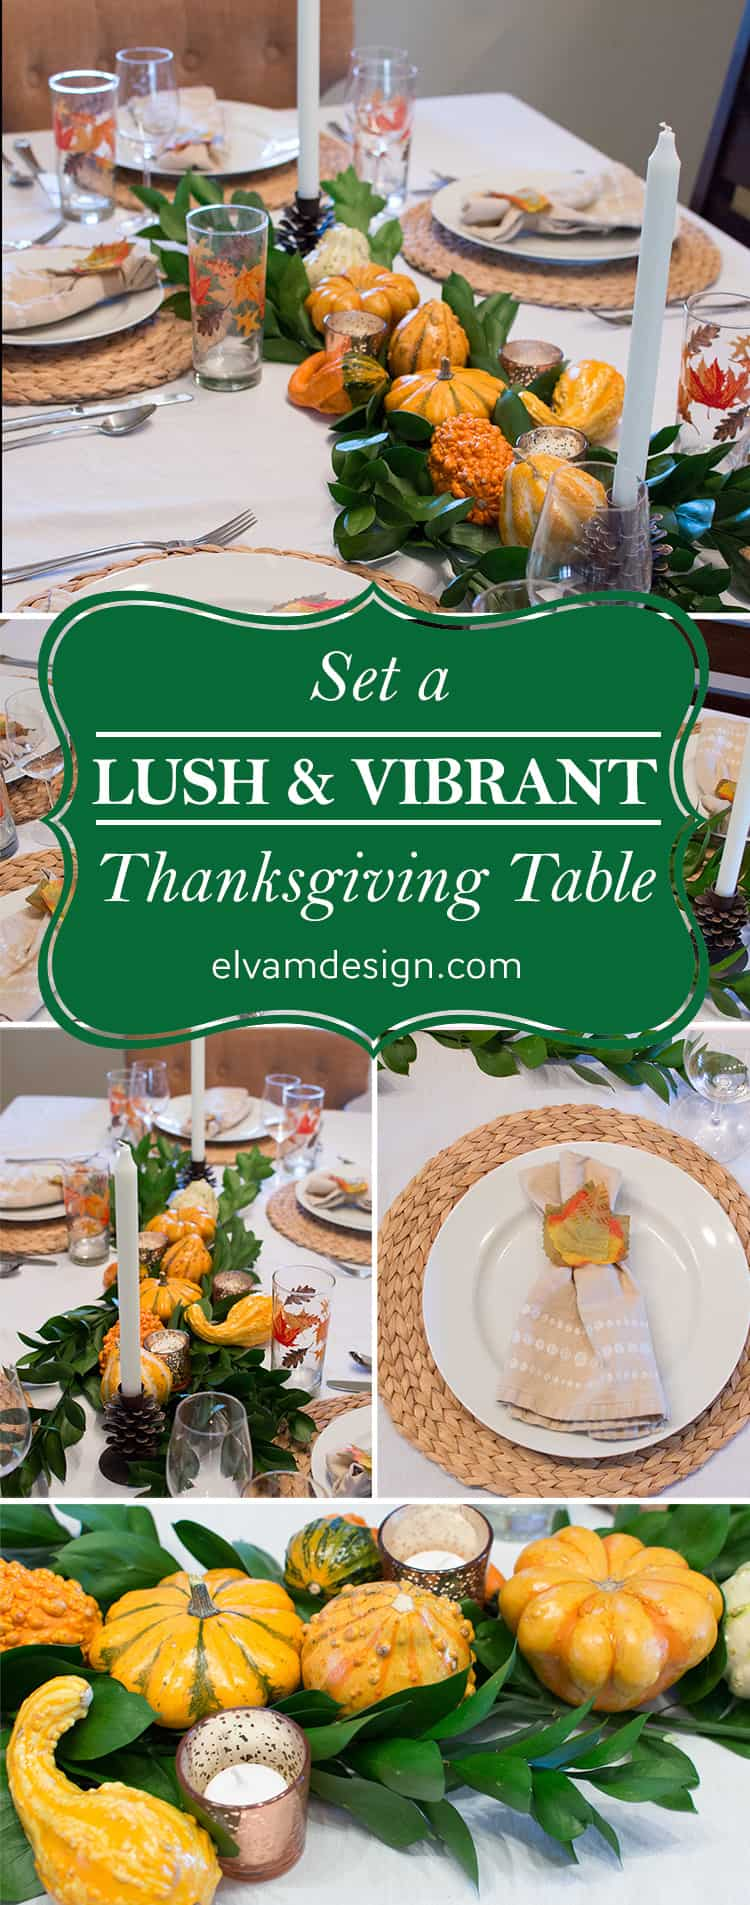 Set a lush and vibrant Thanksgiving table